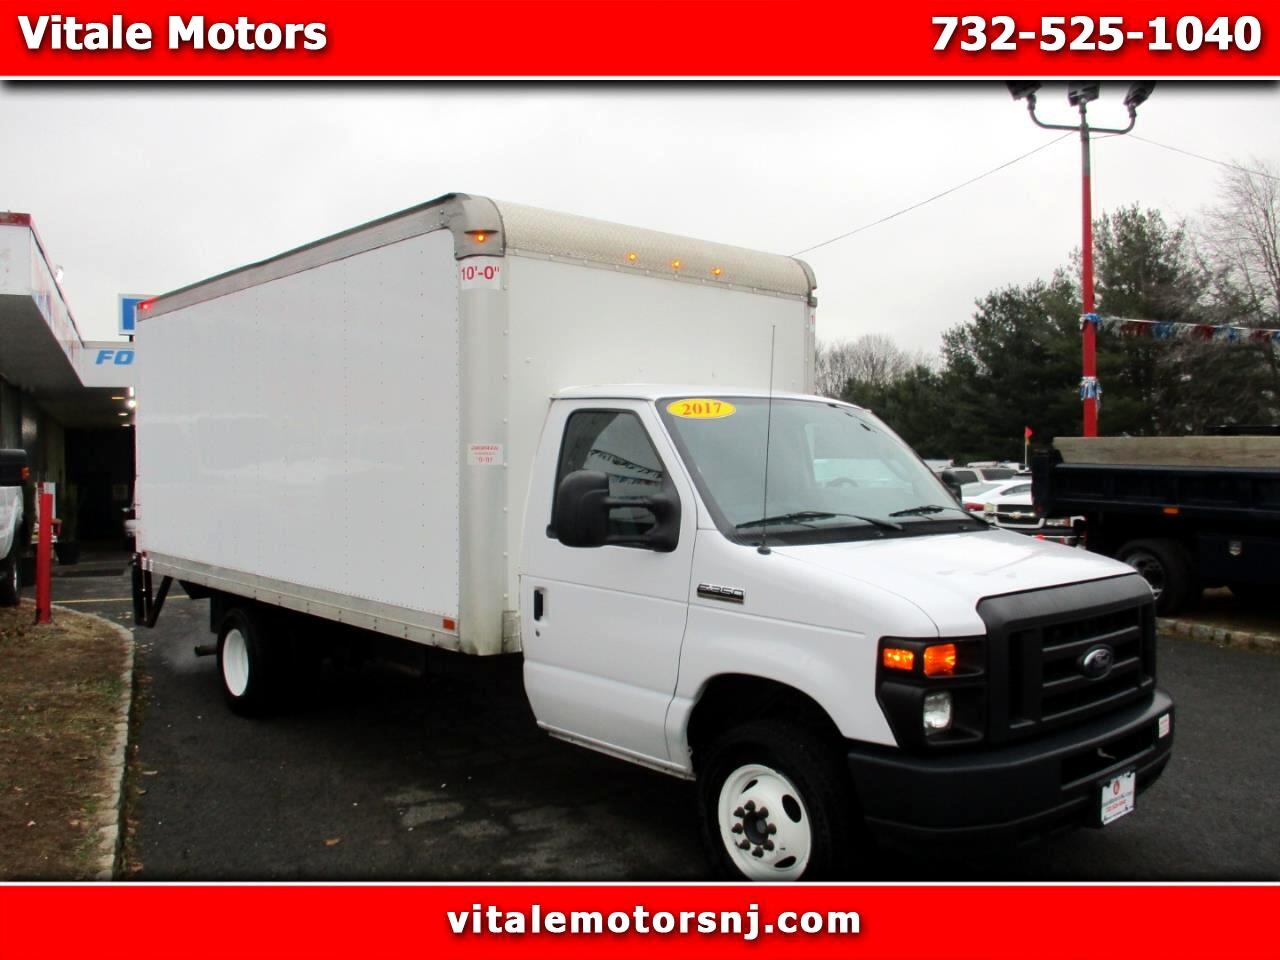 2017 Ford Econoline E-350 16 FOOT BOX TRUCK W/ LIFTGATE